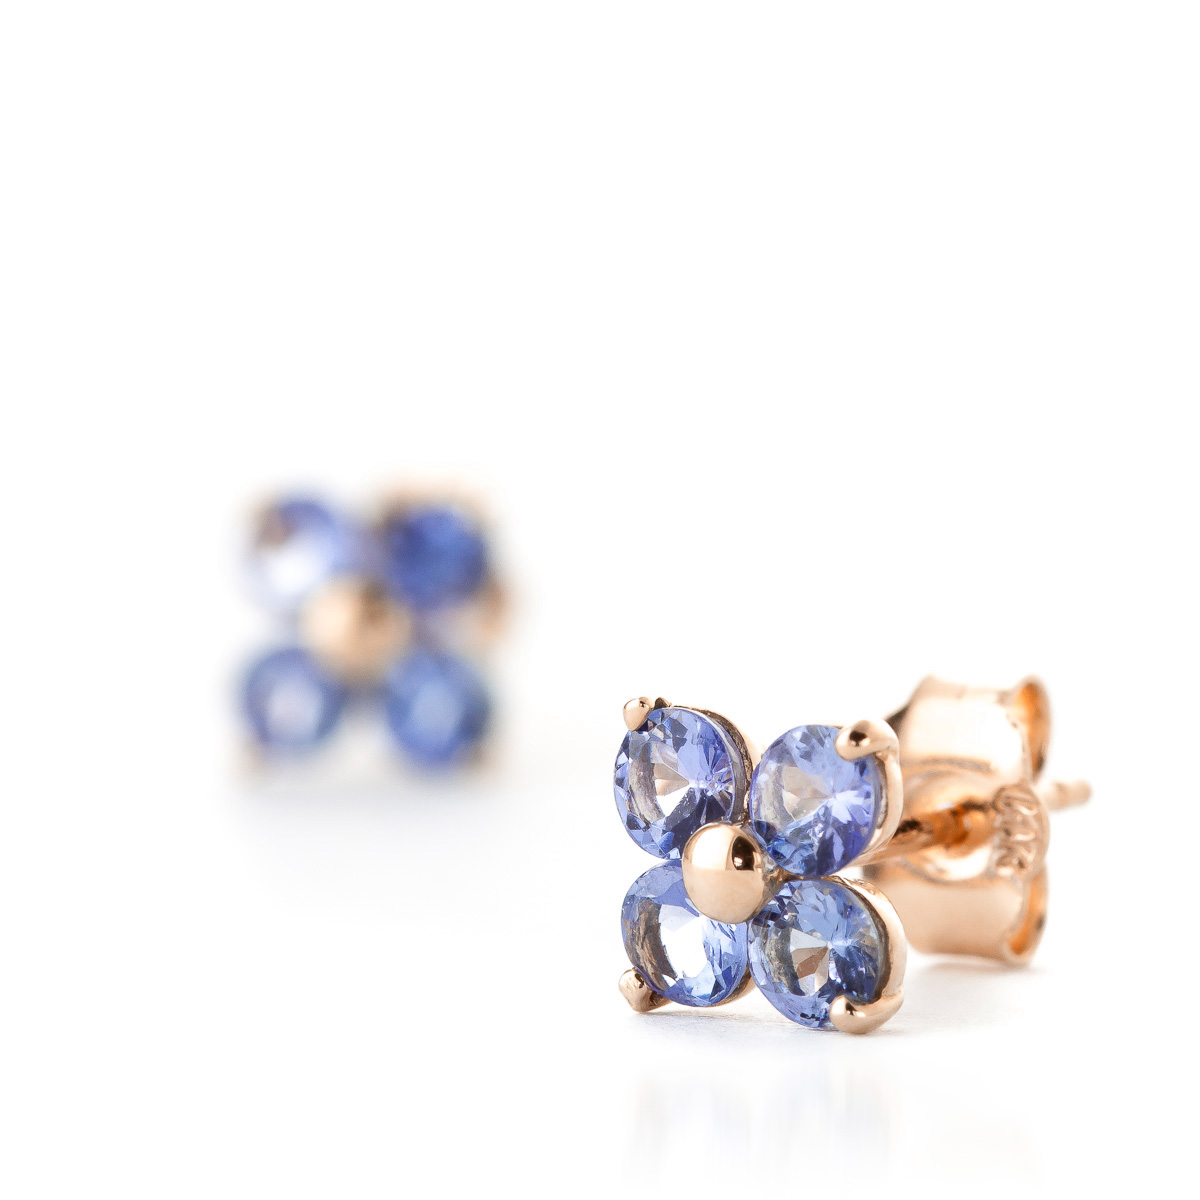 Tanzanite Clover Stud Earrings 1.15ctw in 14K Rose Gold